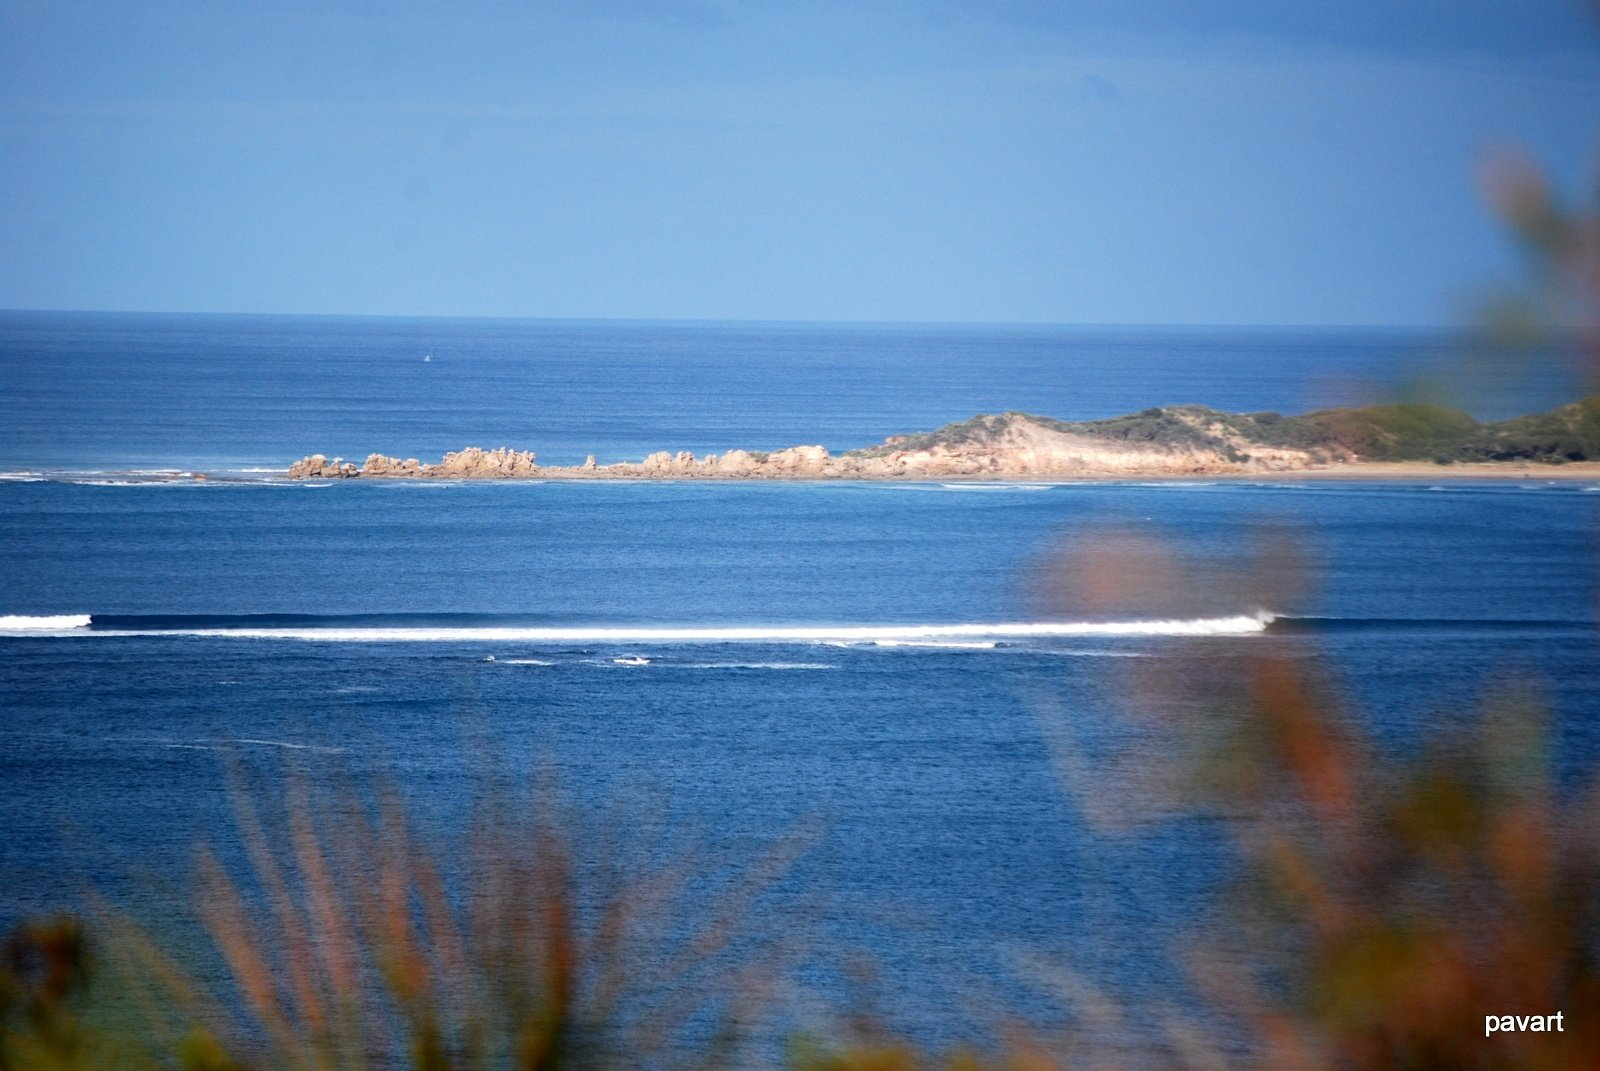 pavart's photo of Anglesea